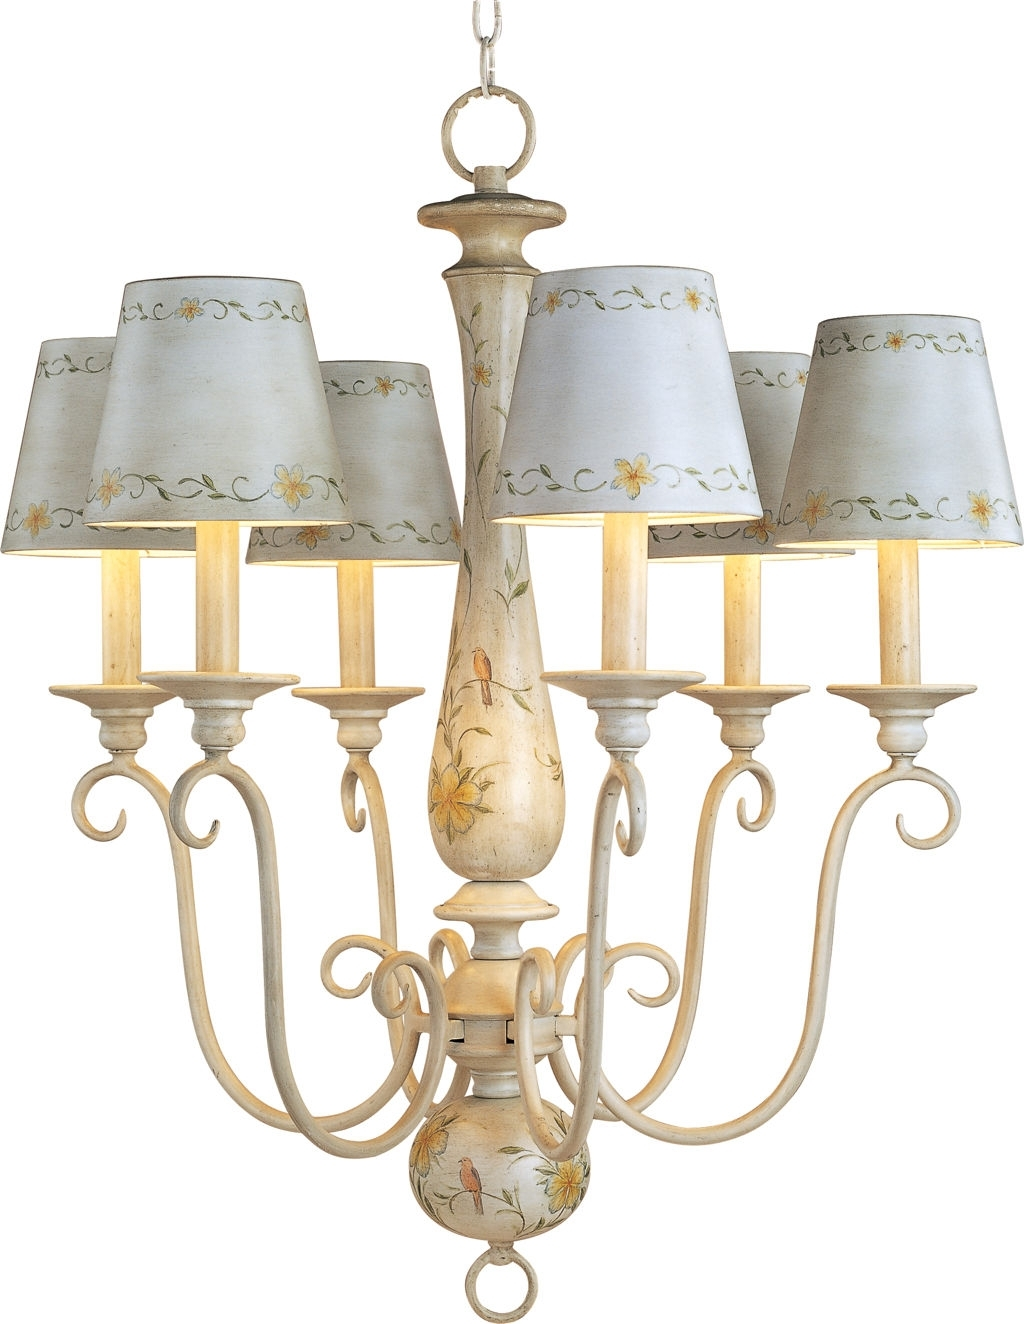 Lampshade Chandeliers Throughout Most Recently Released Antique French Country Mini Chandelier With Ceramic Lamp Shades And (View 8 of 20)